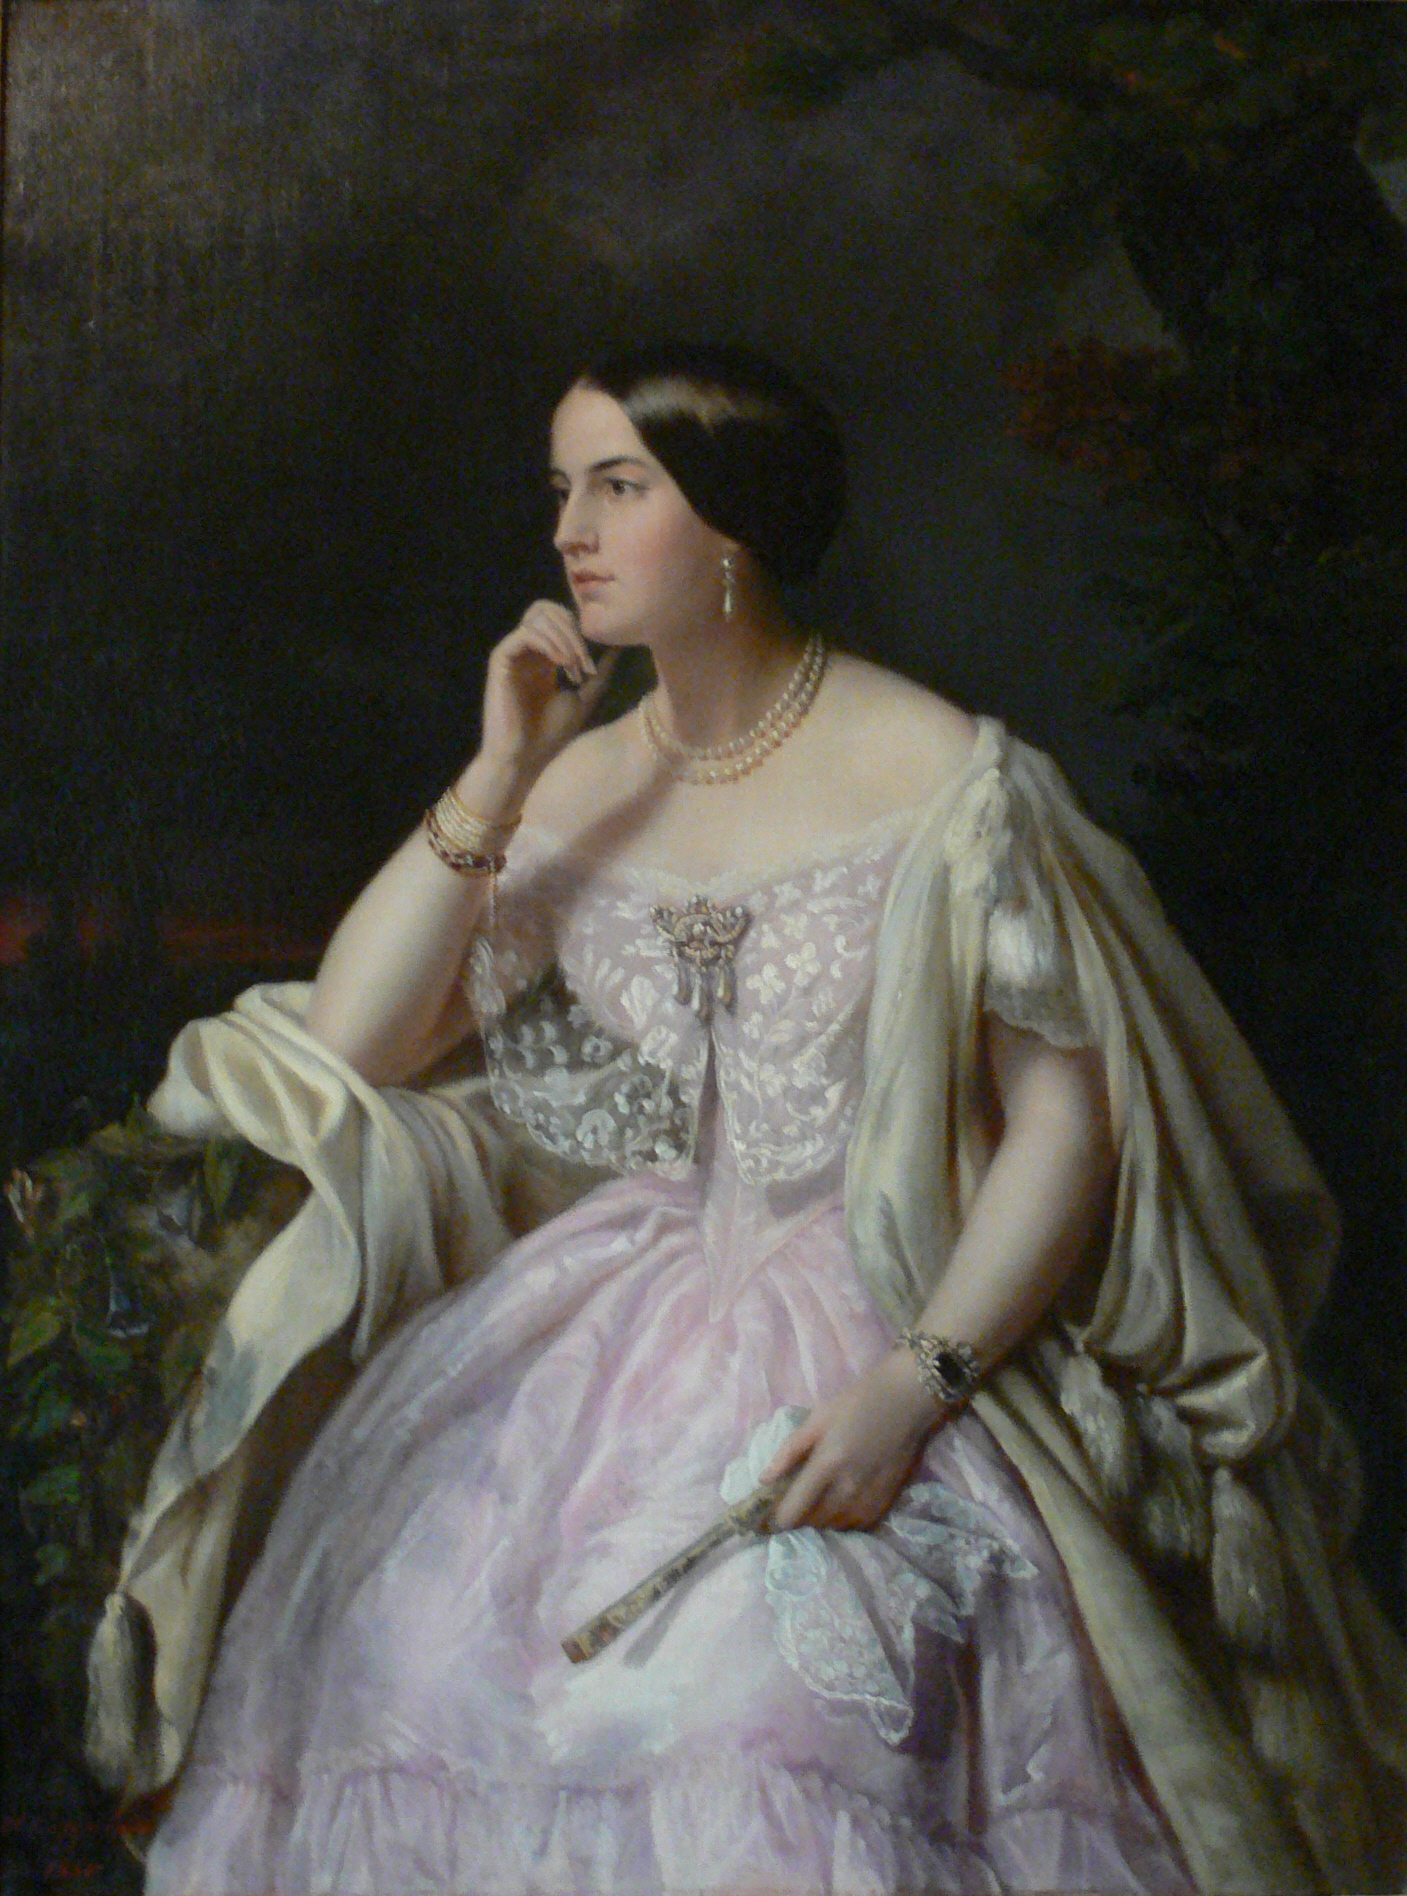 https://upload.wikimedia.org/wikipedia/commons/b/b0/Cappelaere_Portrait_Miss_Haryett_Howard.jpg